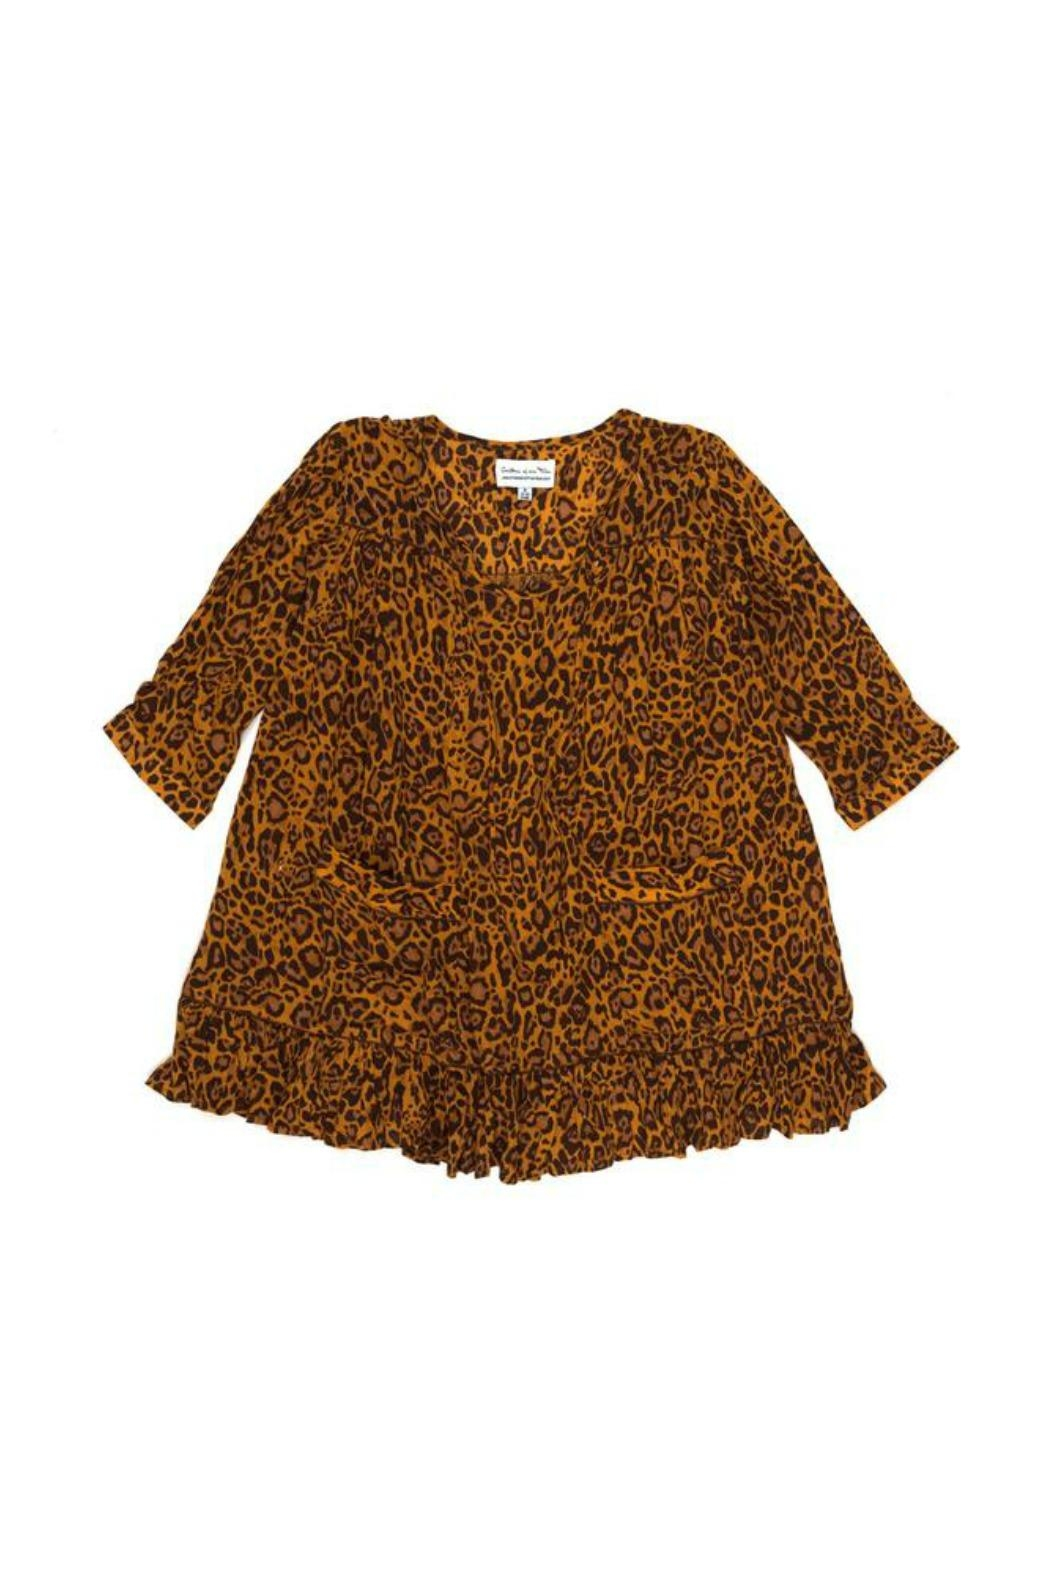 00e778b59e6553 Children of the Tribe Jungle Fever Kids Dress from Las Vegas by R+D ...